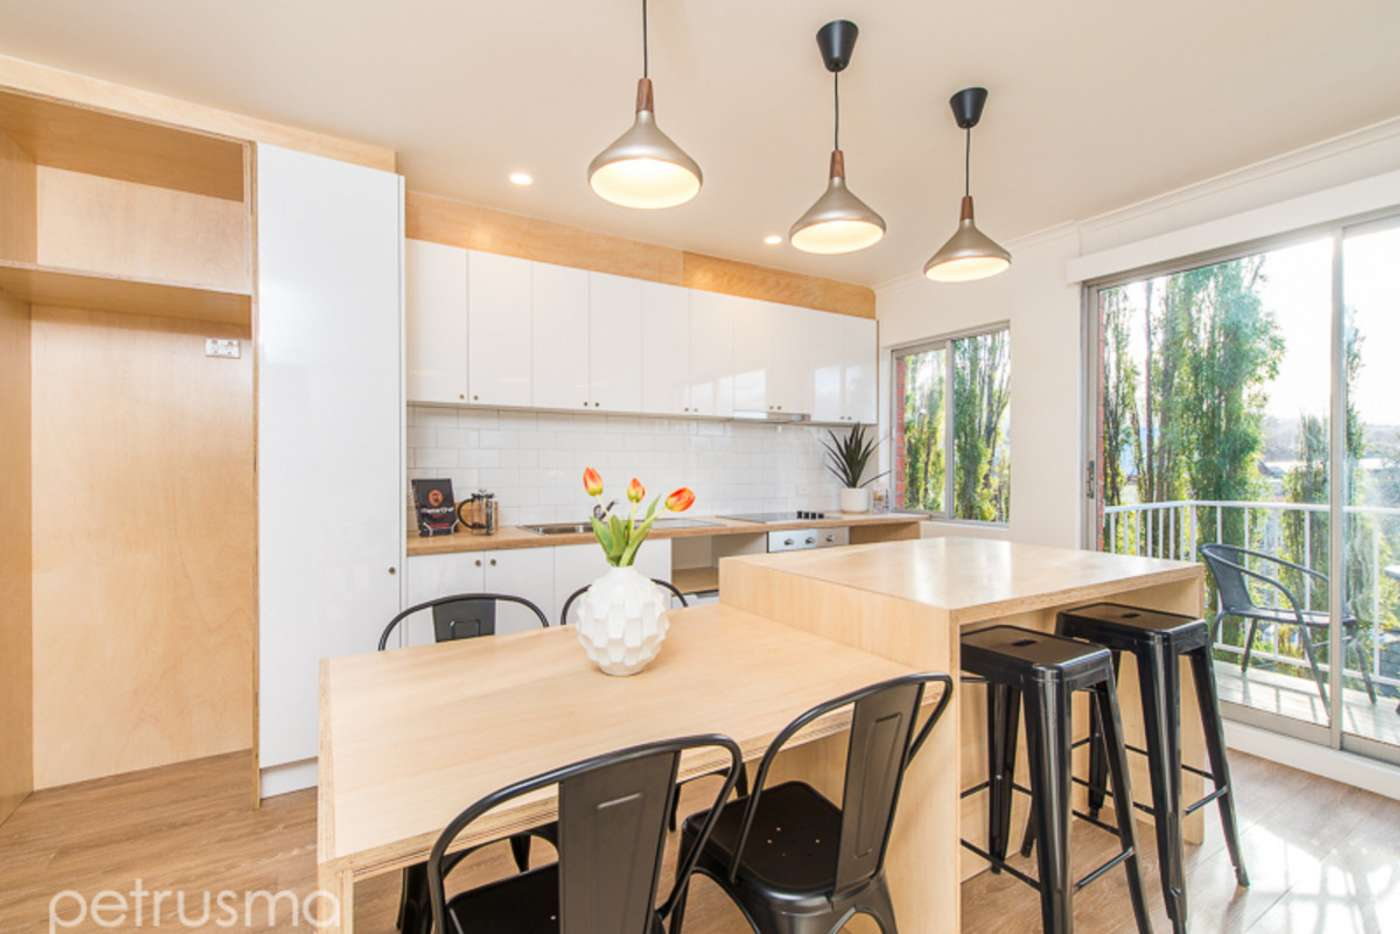 Main view of Homely apartment listing, 11/7 View Street, Sandy Bay TAS 7005